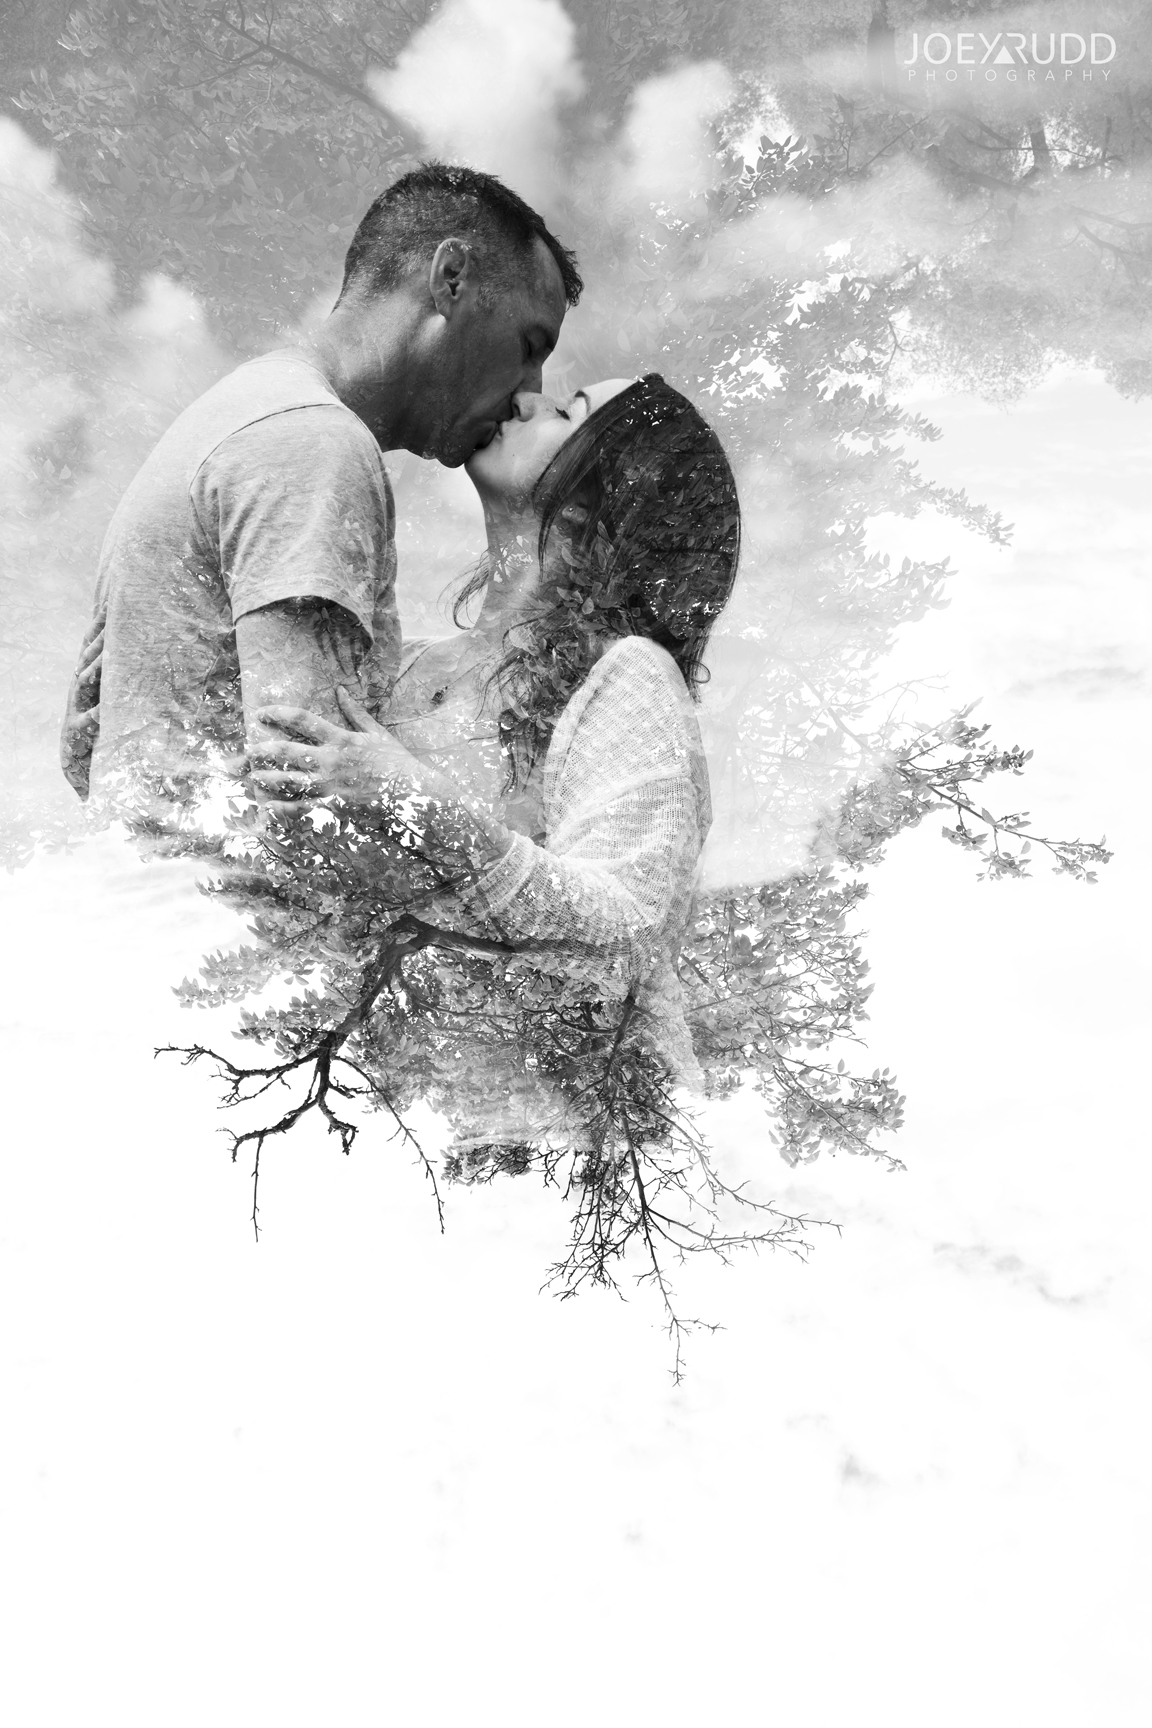 Double Exposure Photo by Joey Rudd Photography Award Winning Ottawa Wedding Photographer Engagement Arboretum